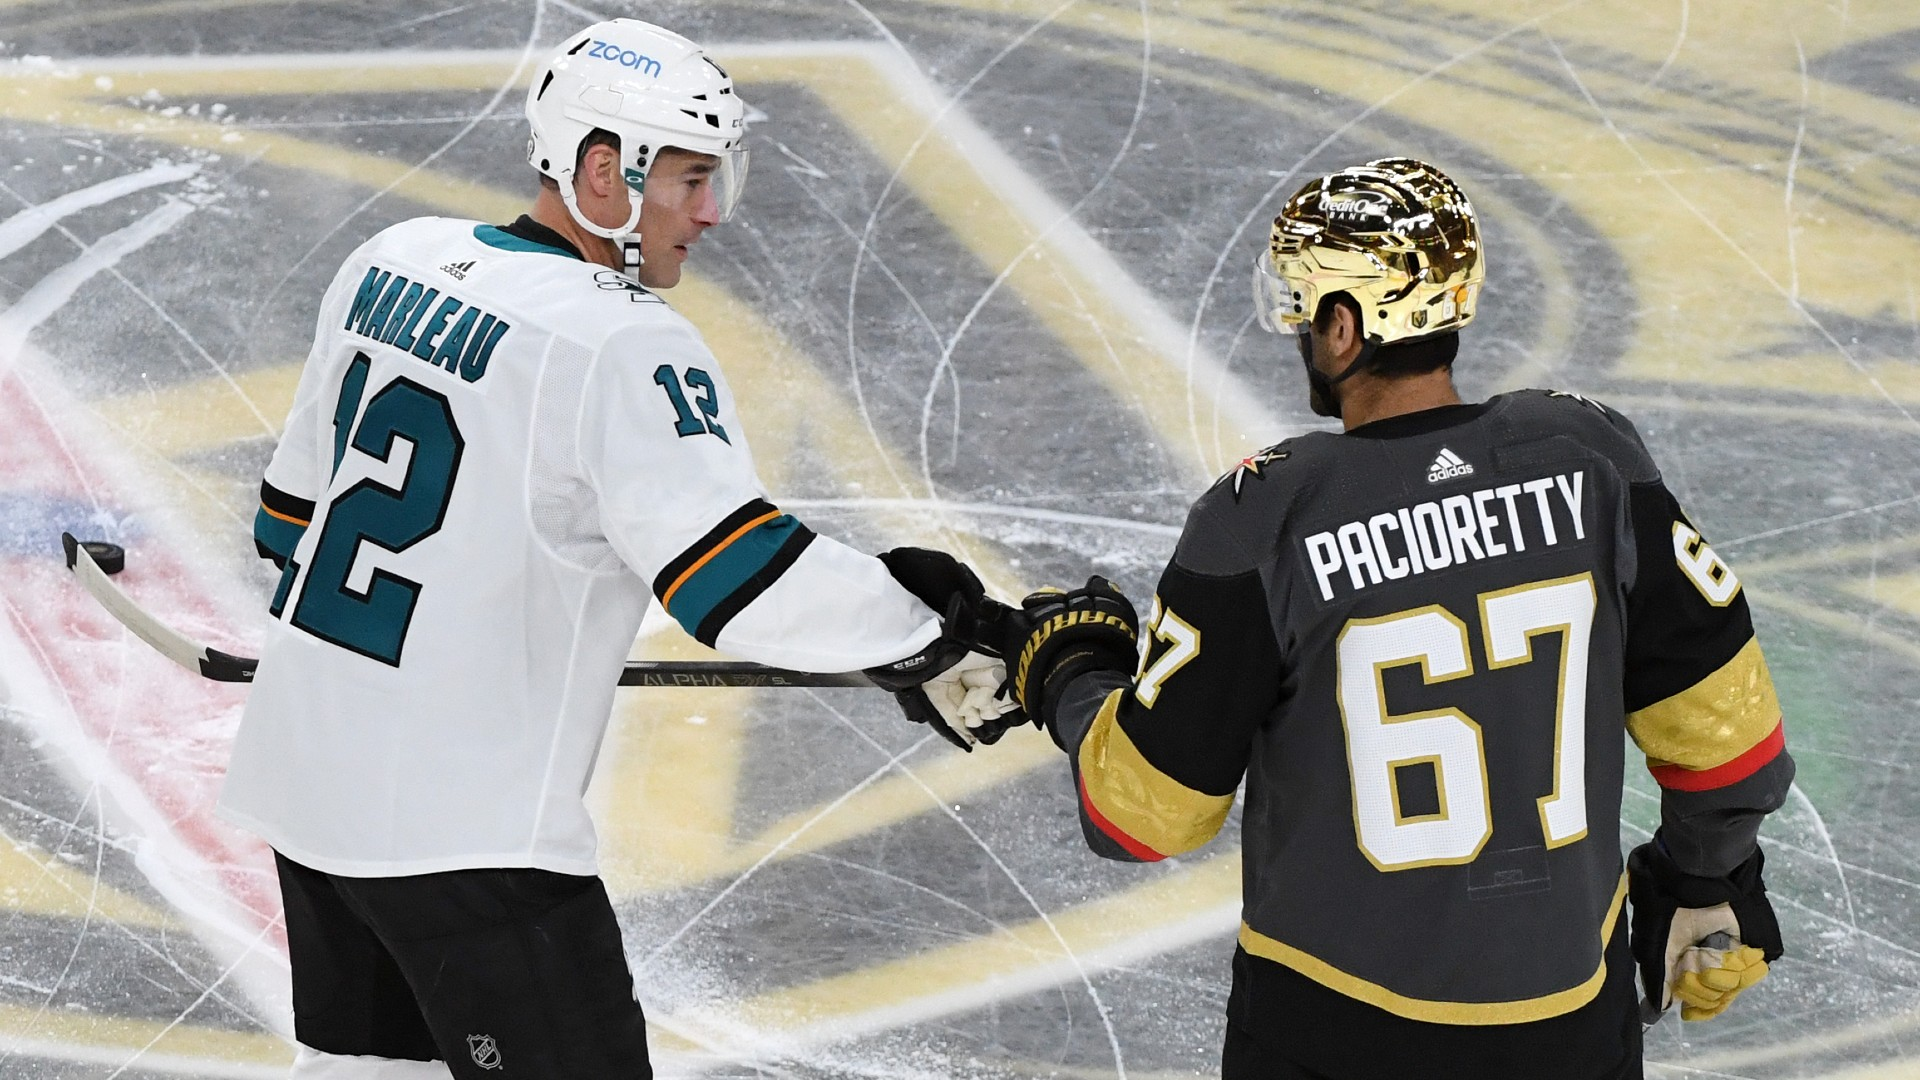 The sports world has congratulated Patrick Marleau on setting an NHL record in the games he has played